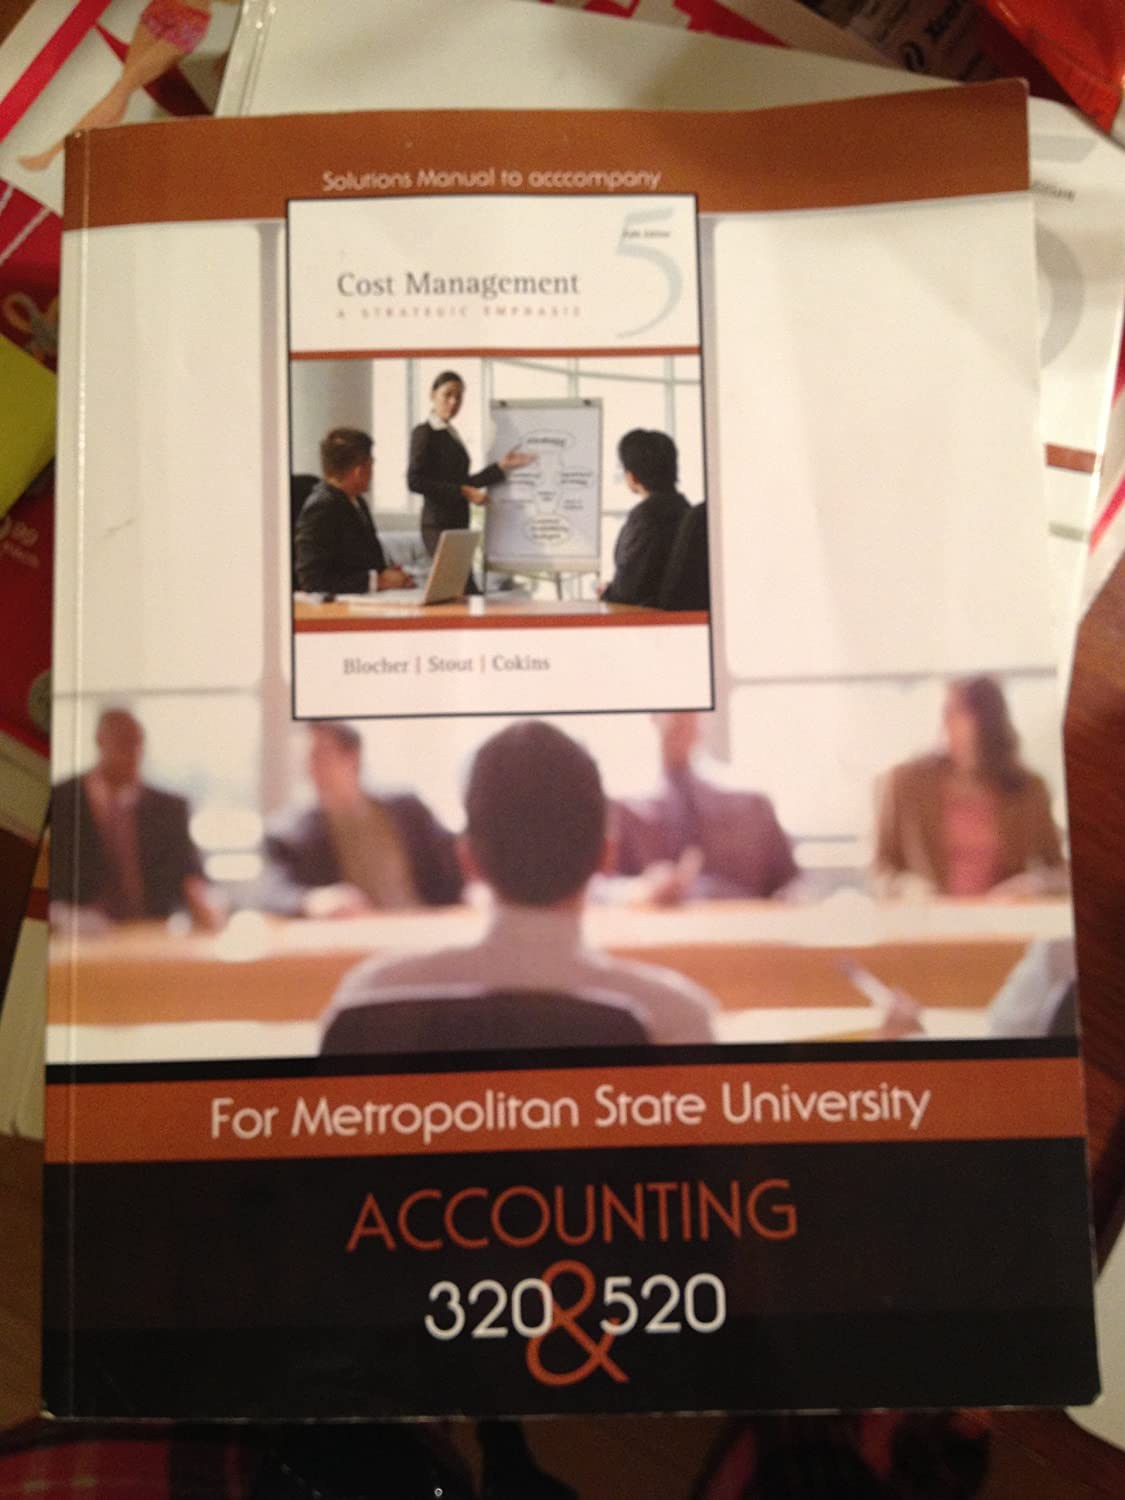 Amazon.com: Solutions Manual to Accompany, Cost Management, a Strategic  Emphasis, for Metropolitan State University Accounting 320 and 520: Stout &  Cokins ...